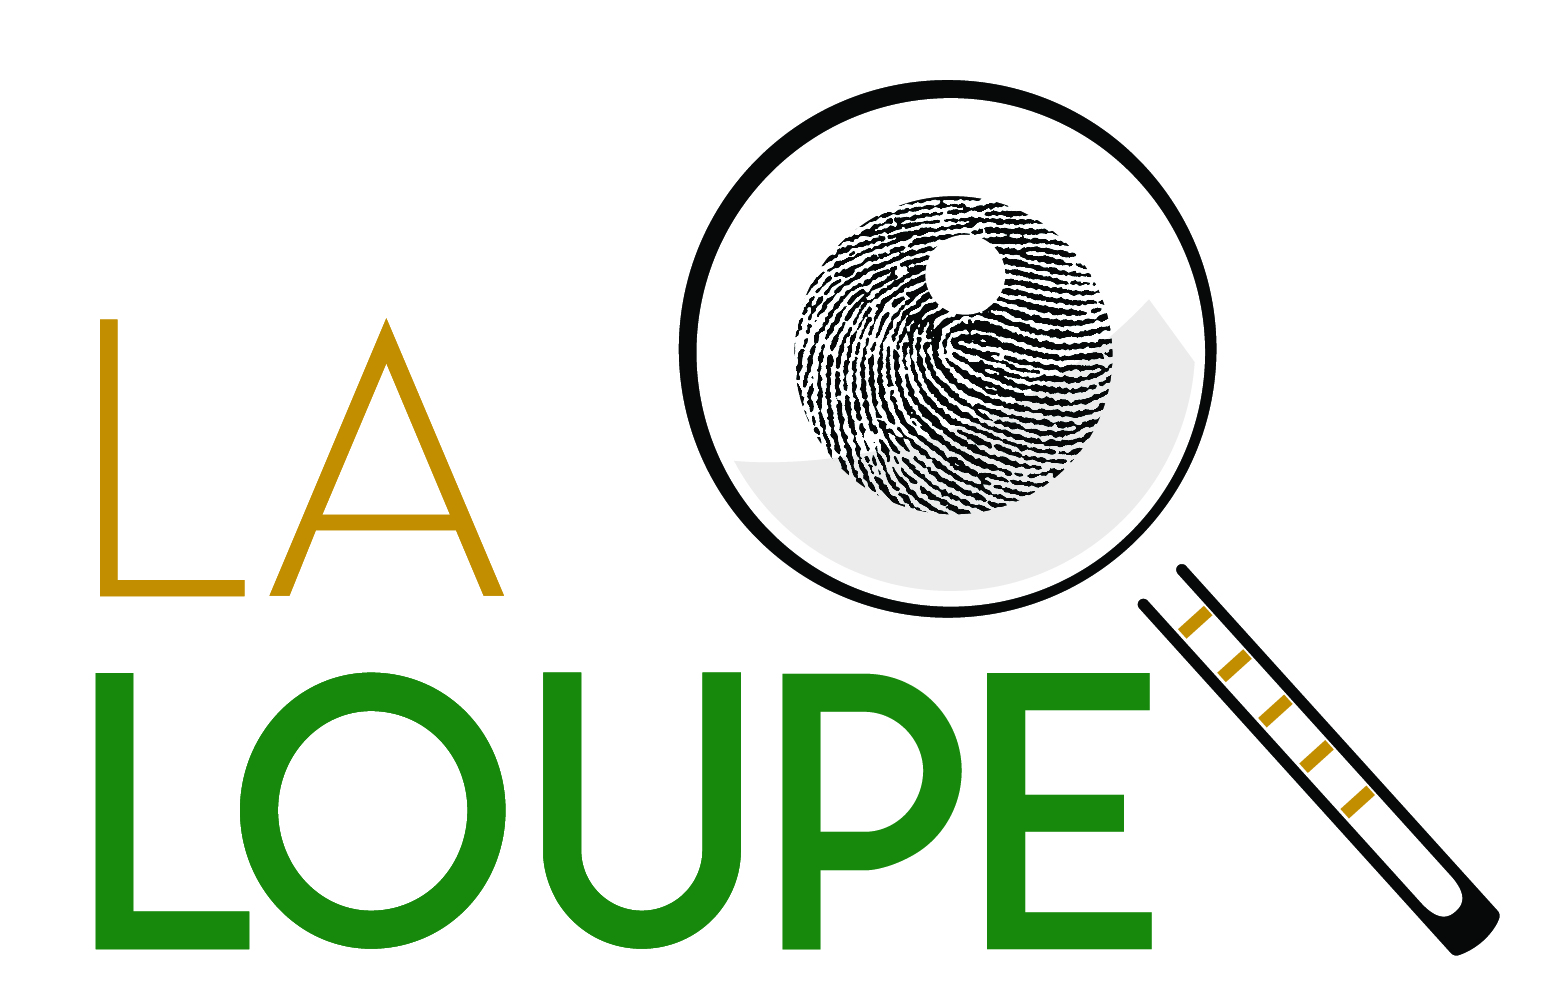 LaLOUPE- LogoType-FINAL.jpg